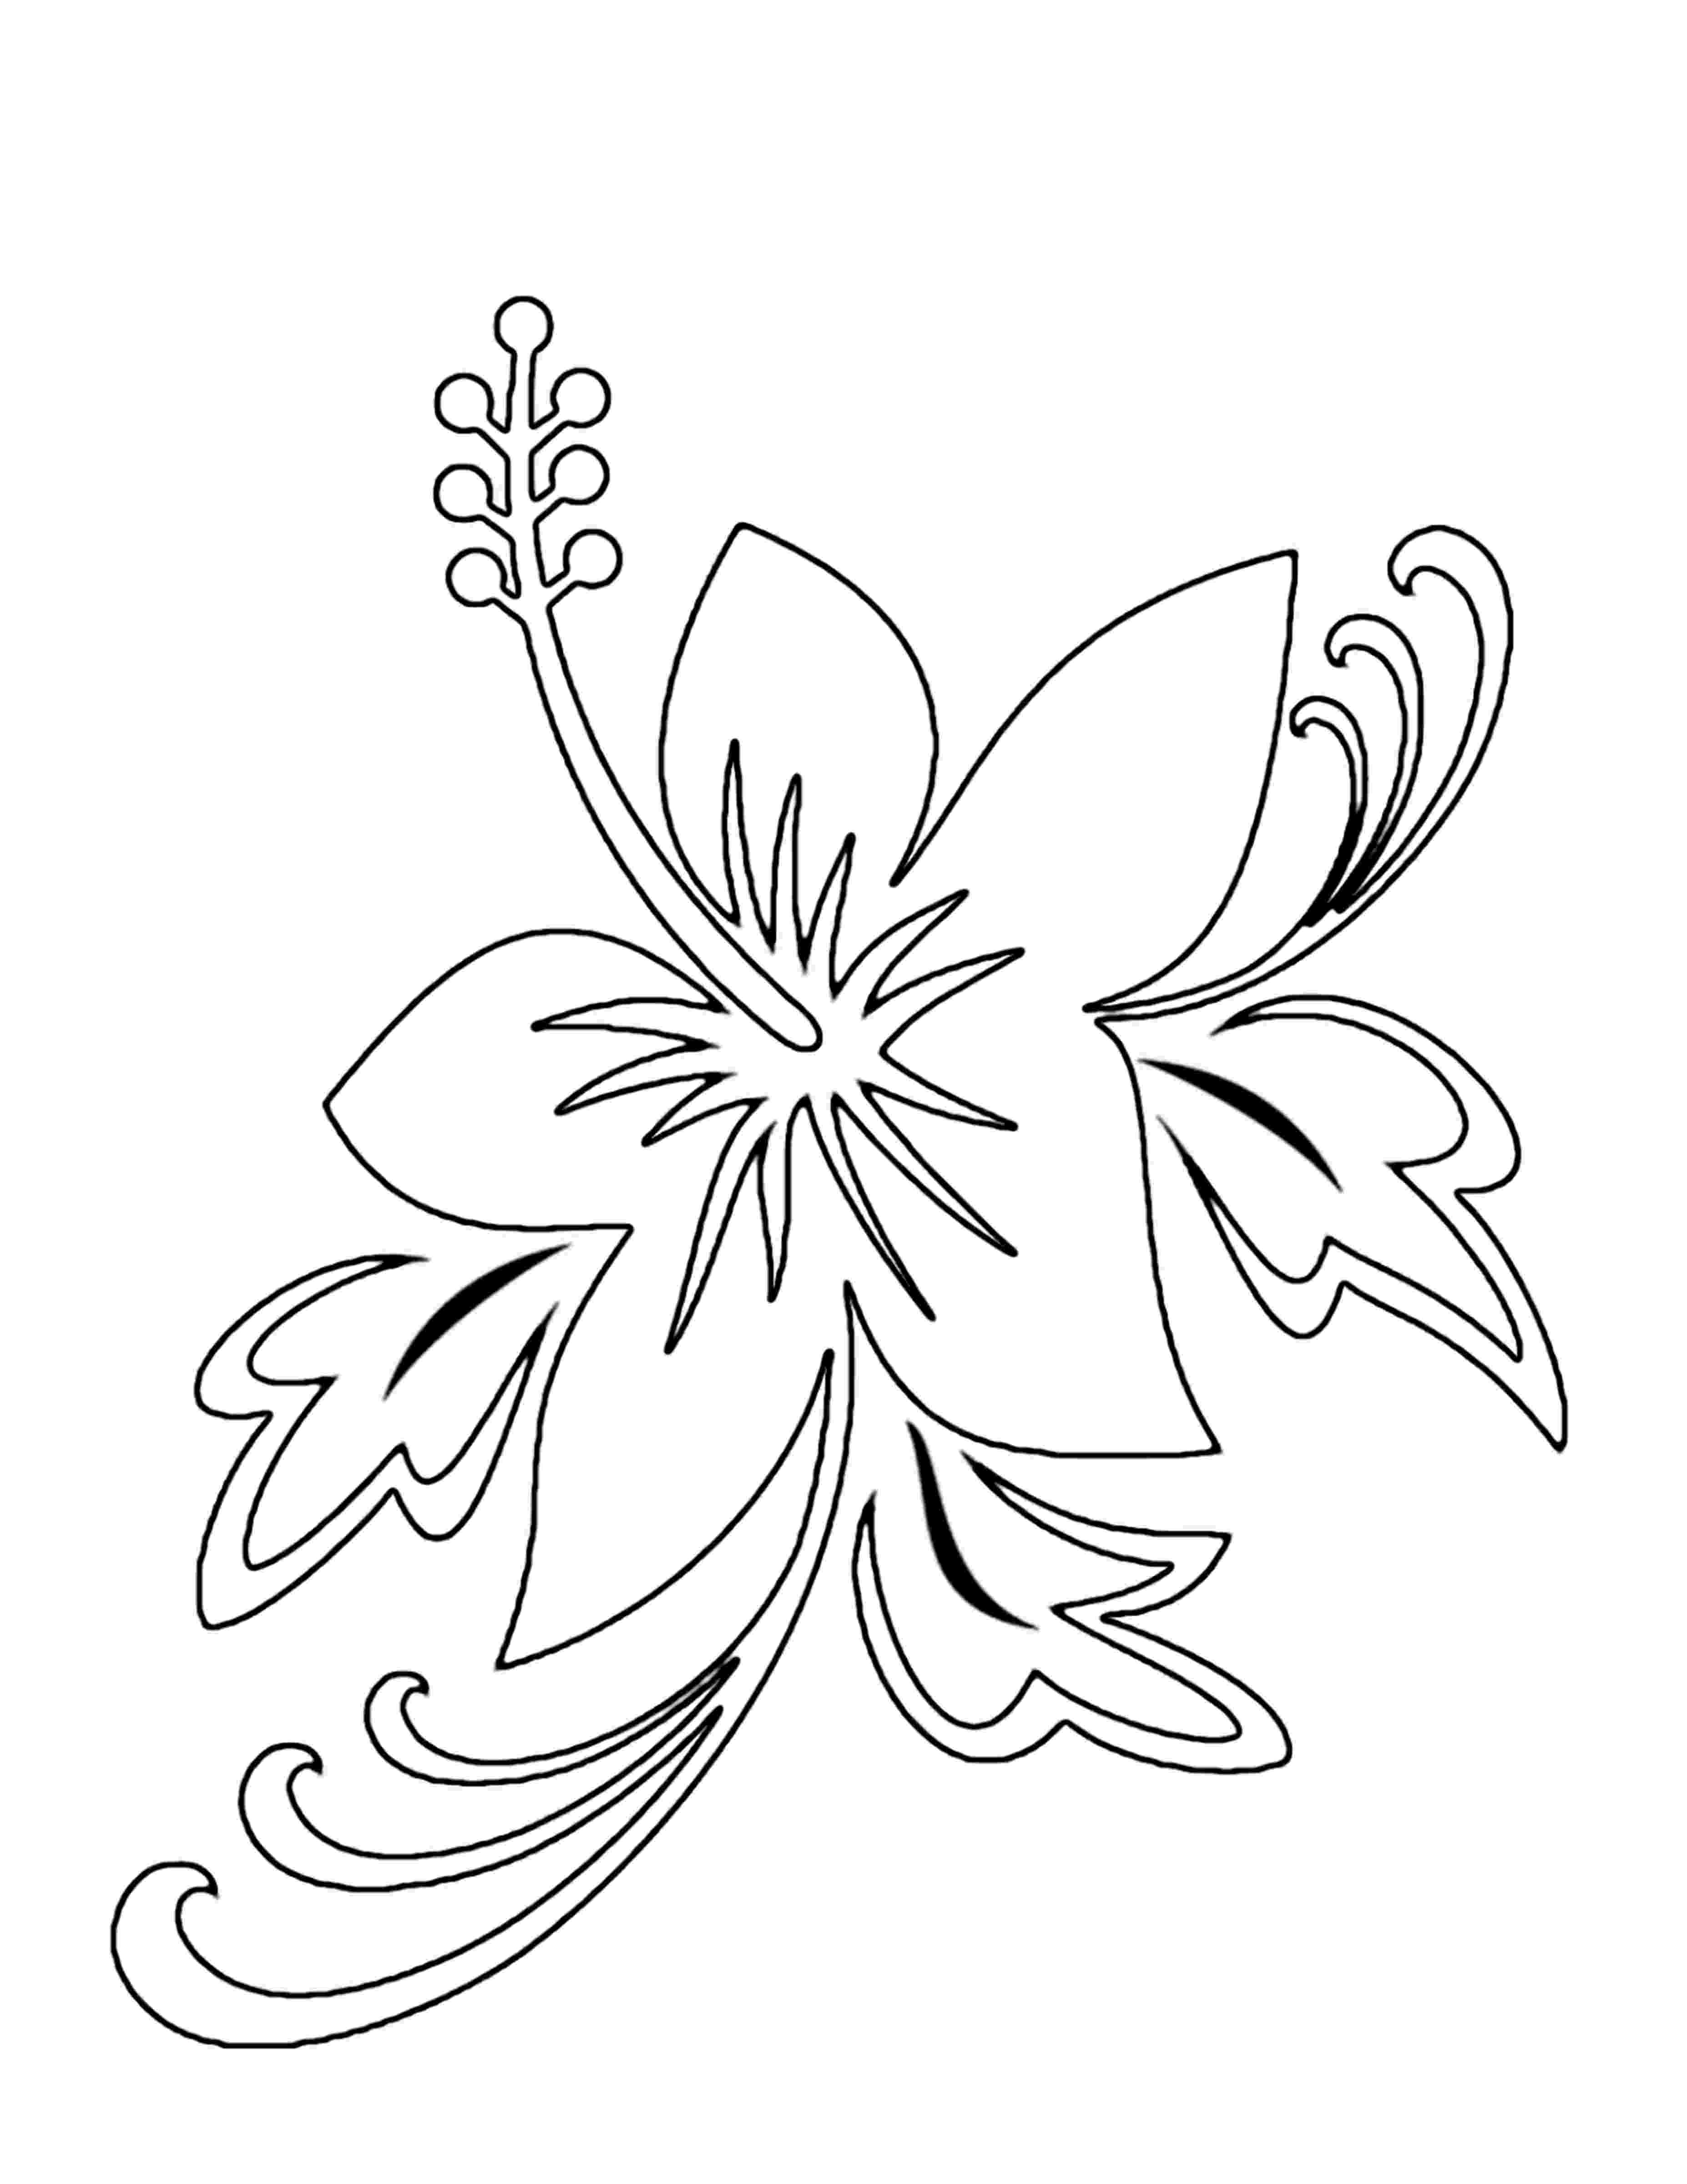 picture of flower for colouring free printable flower coloring pages for kids best for of picture flower colouring